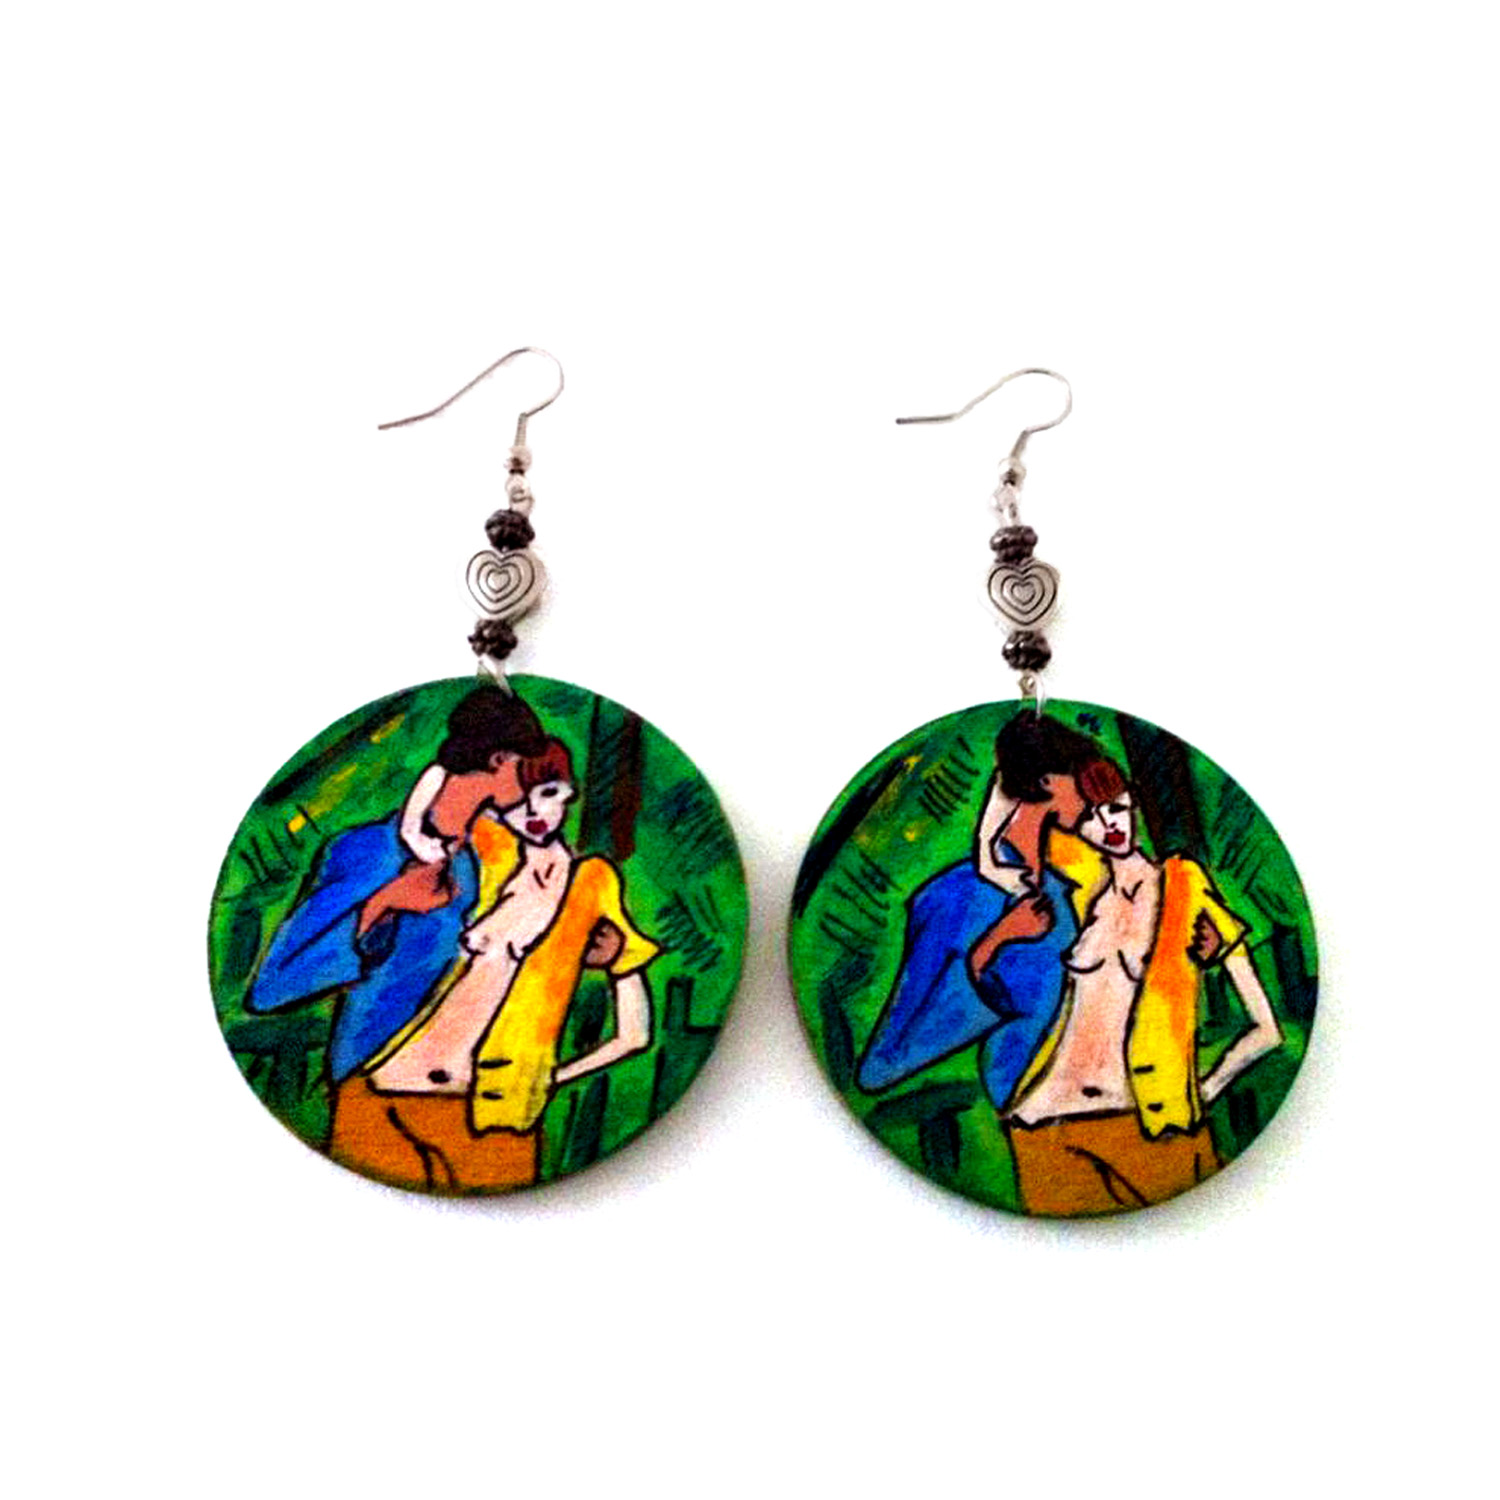 Hand-painted earrings - Gypsy Lovers by Mueller